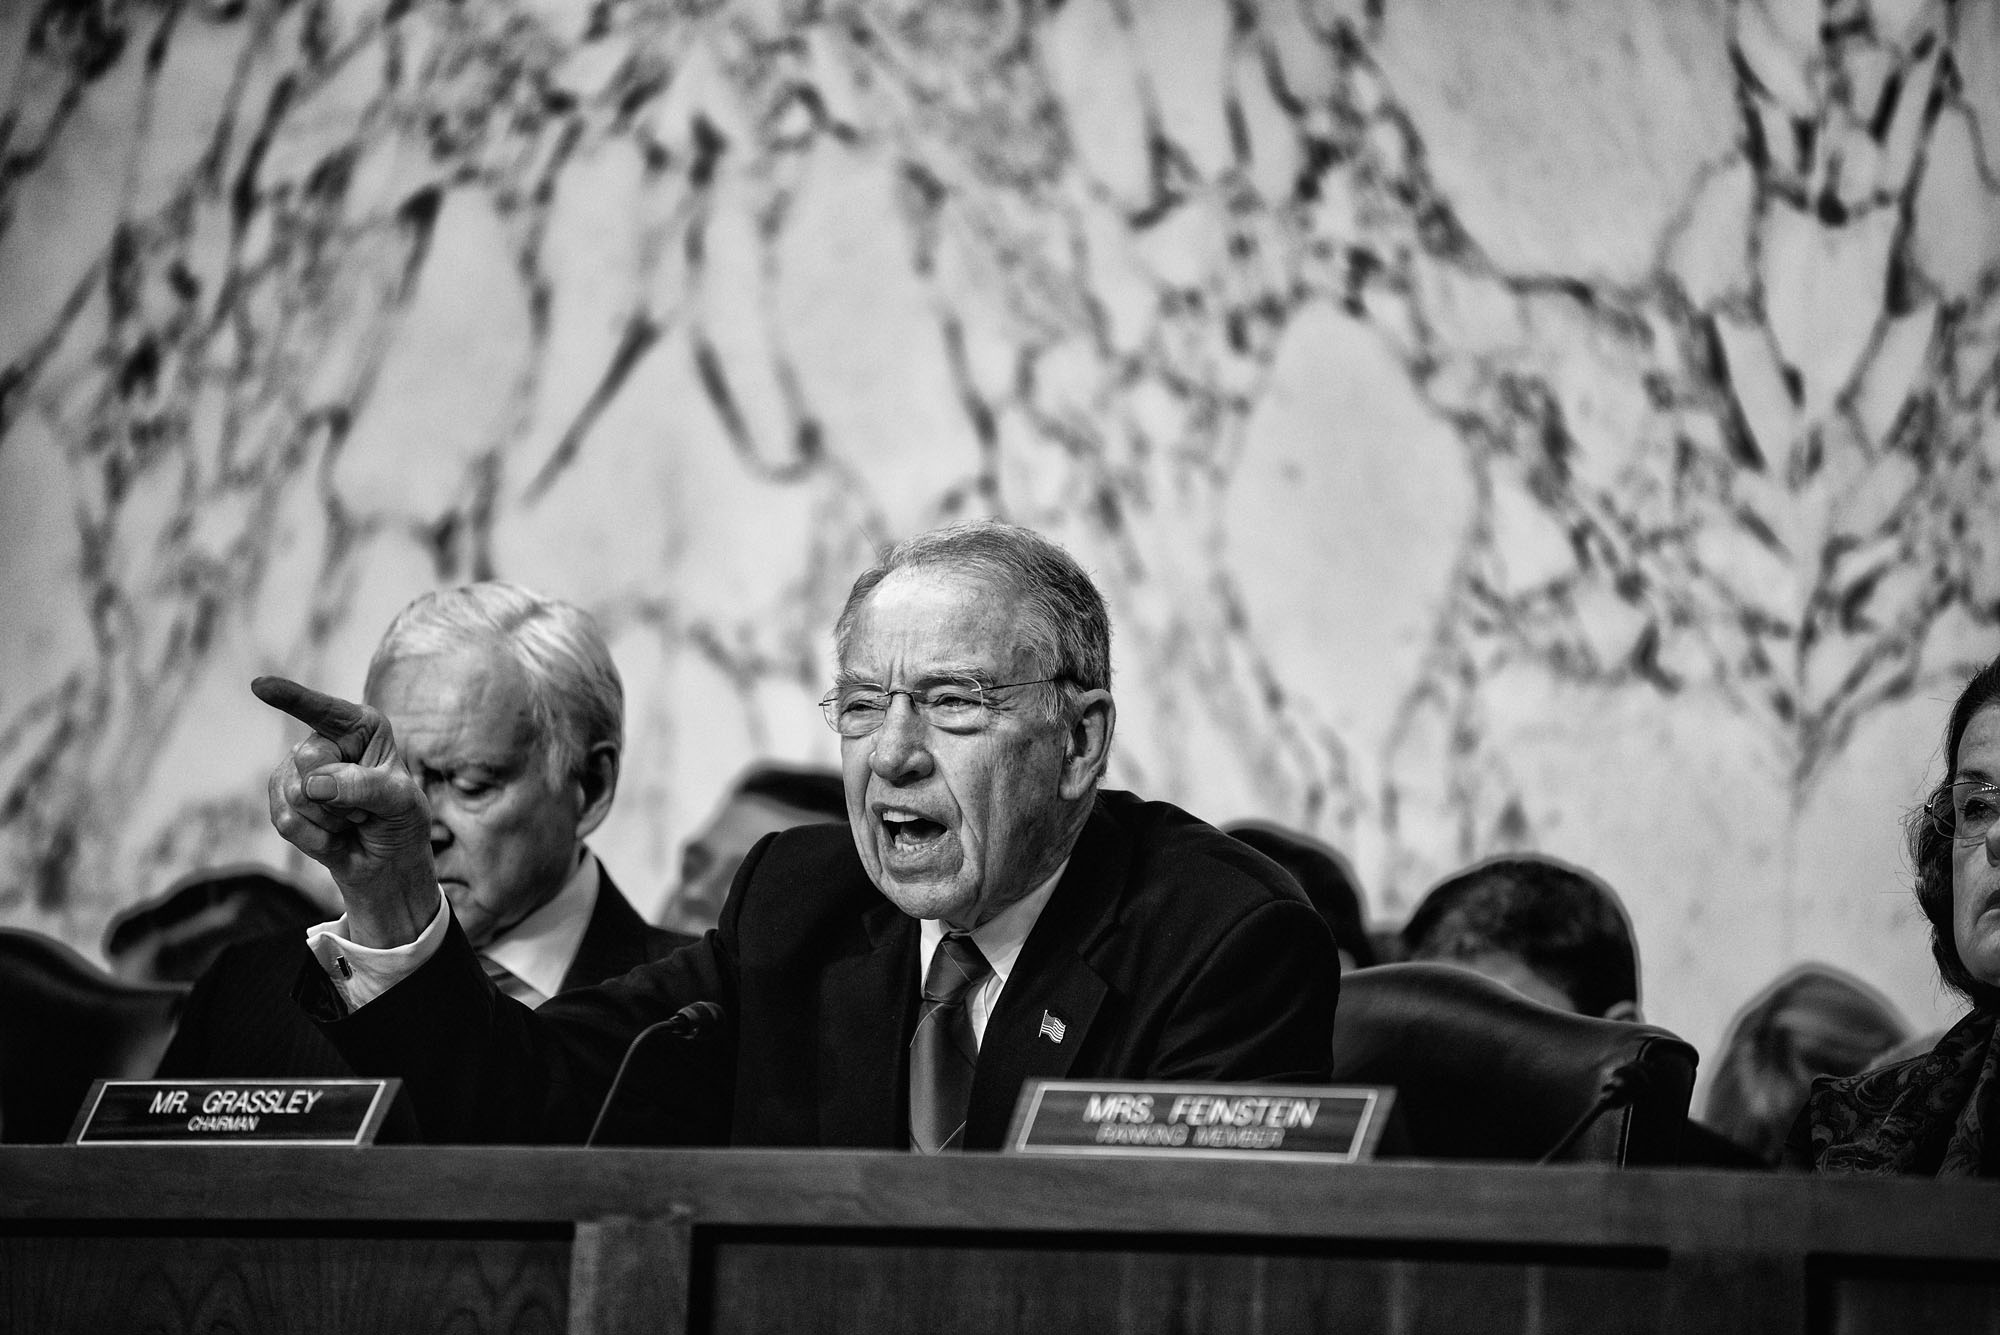 Senator Chuck Grassley questions Judge Neil Gorsuch  during the third day of his Supreme Court confirmation hearing before the Senate Judiciary Committee on March 22, 2017.